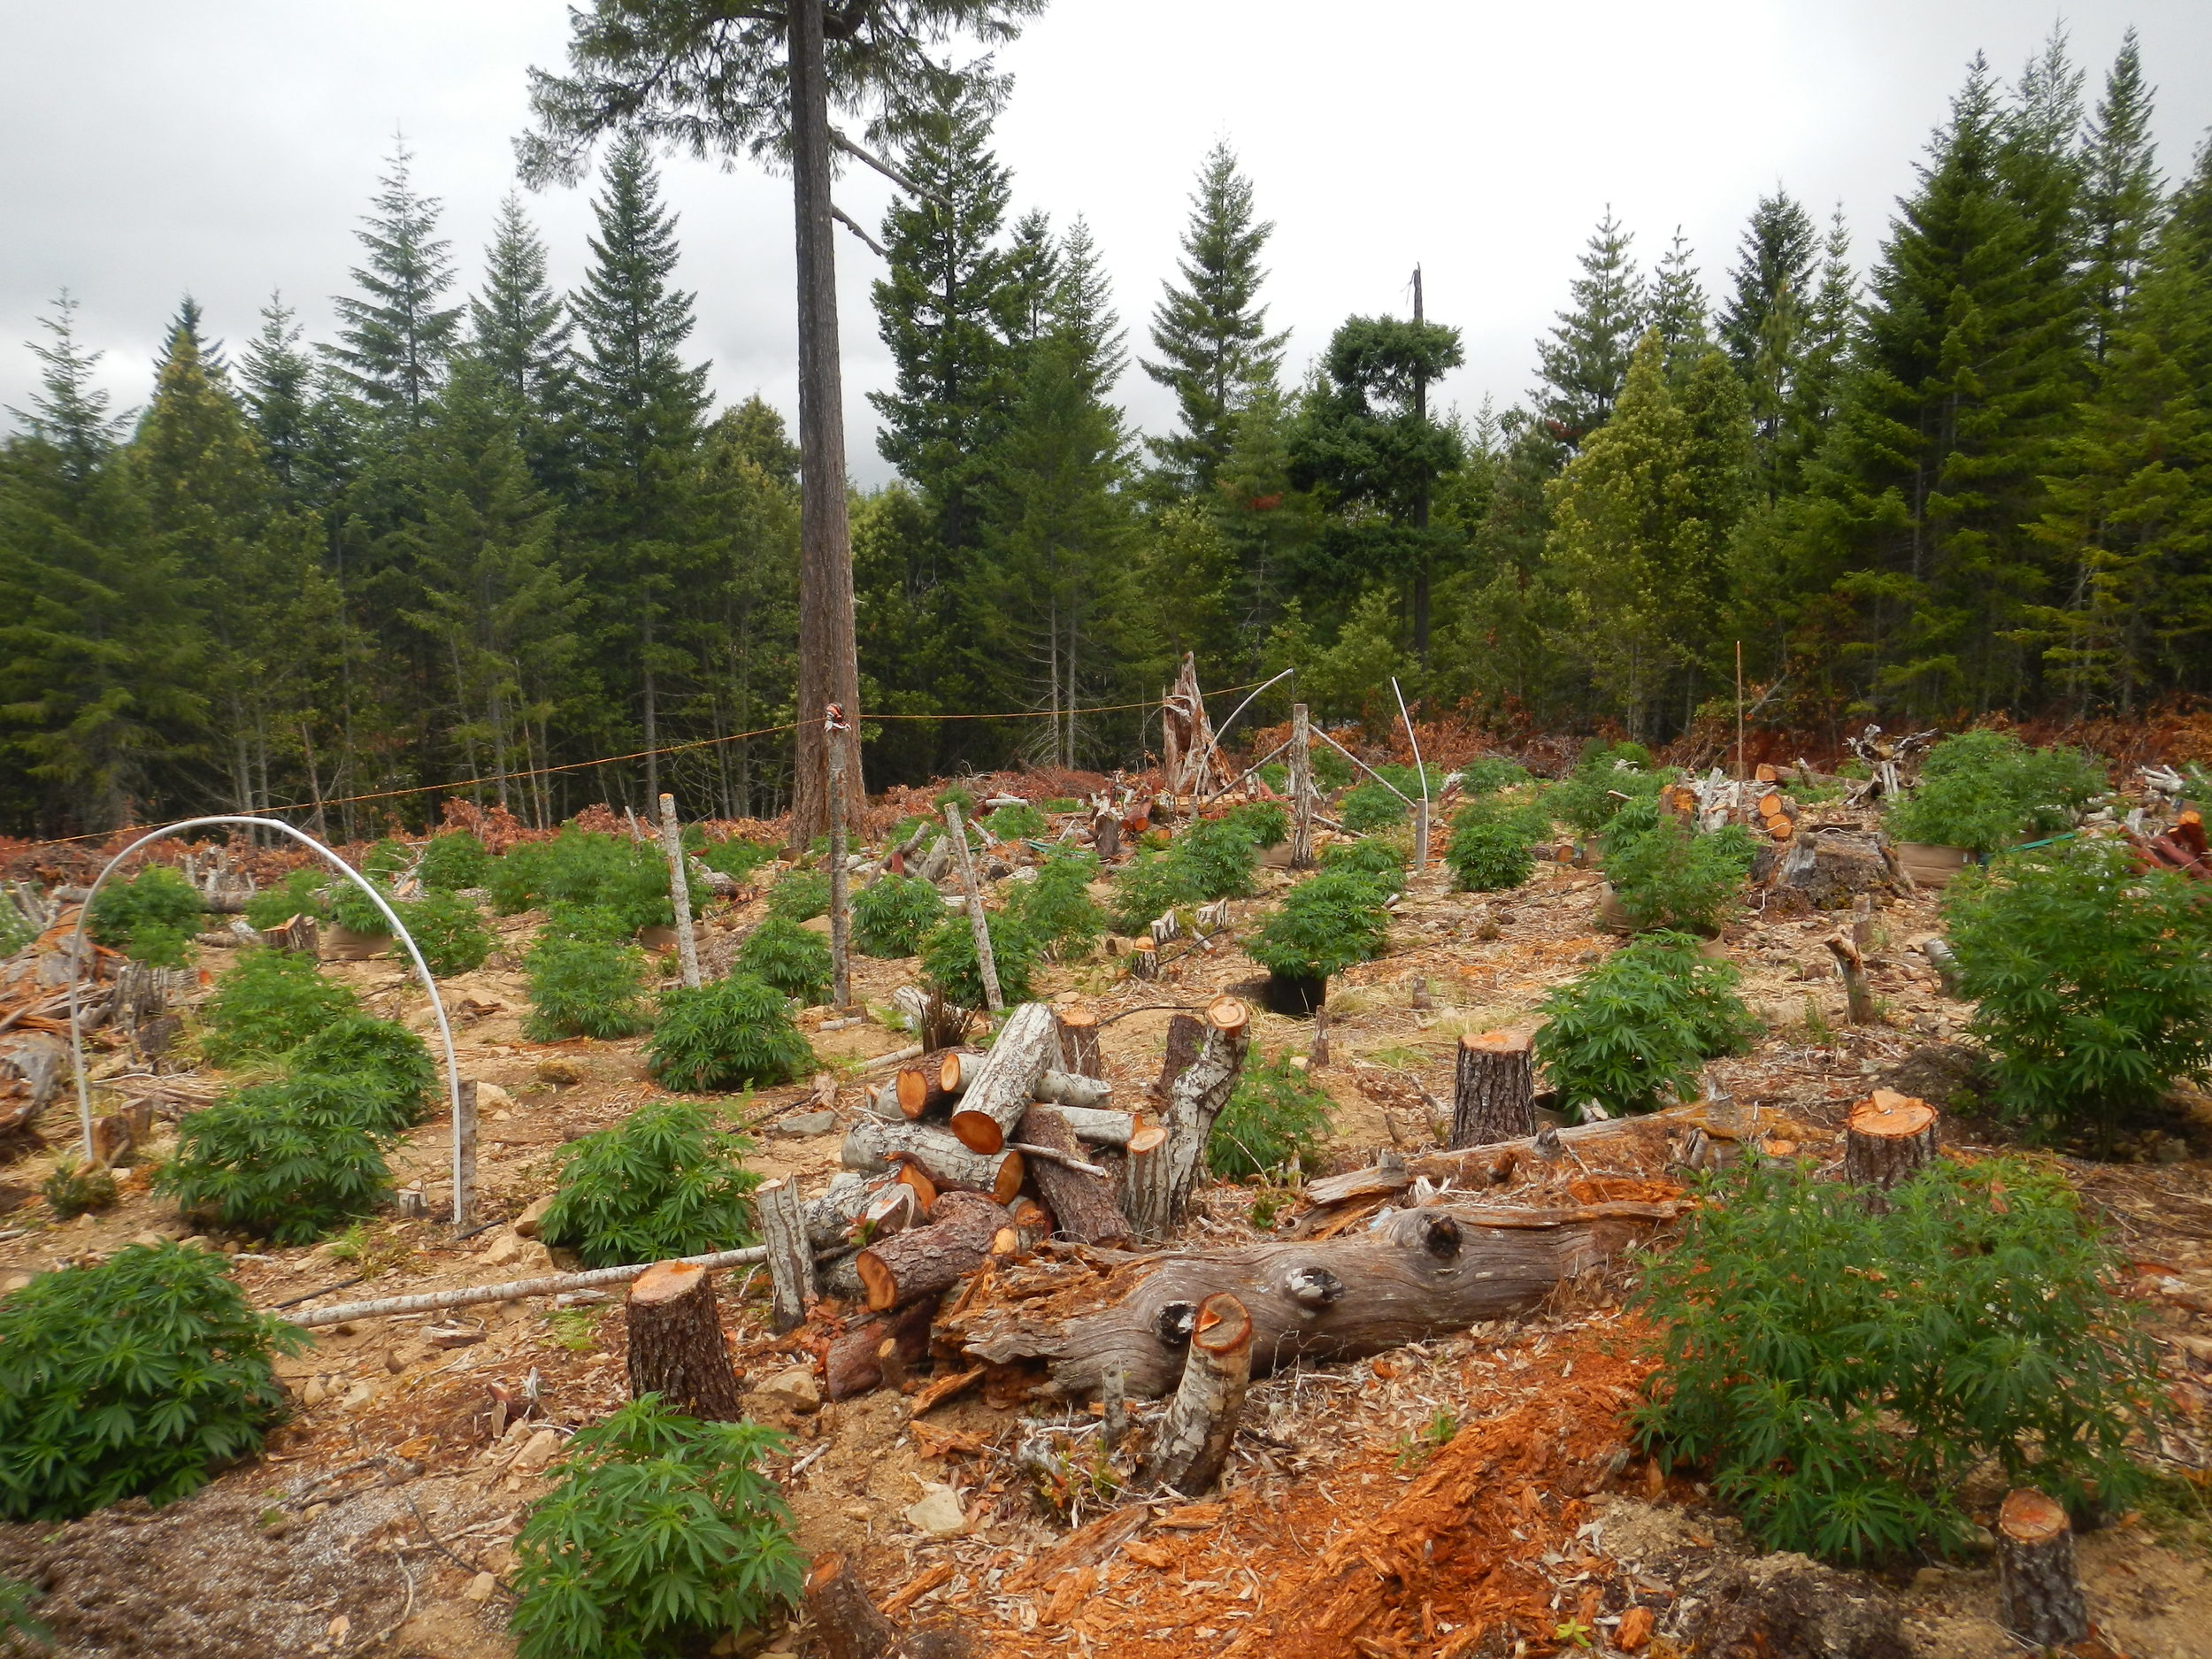 Similar grow operations can be found in California. This one is located in Humboldt County.